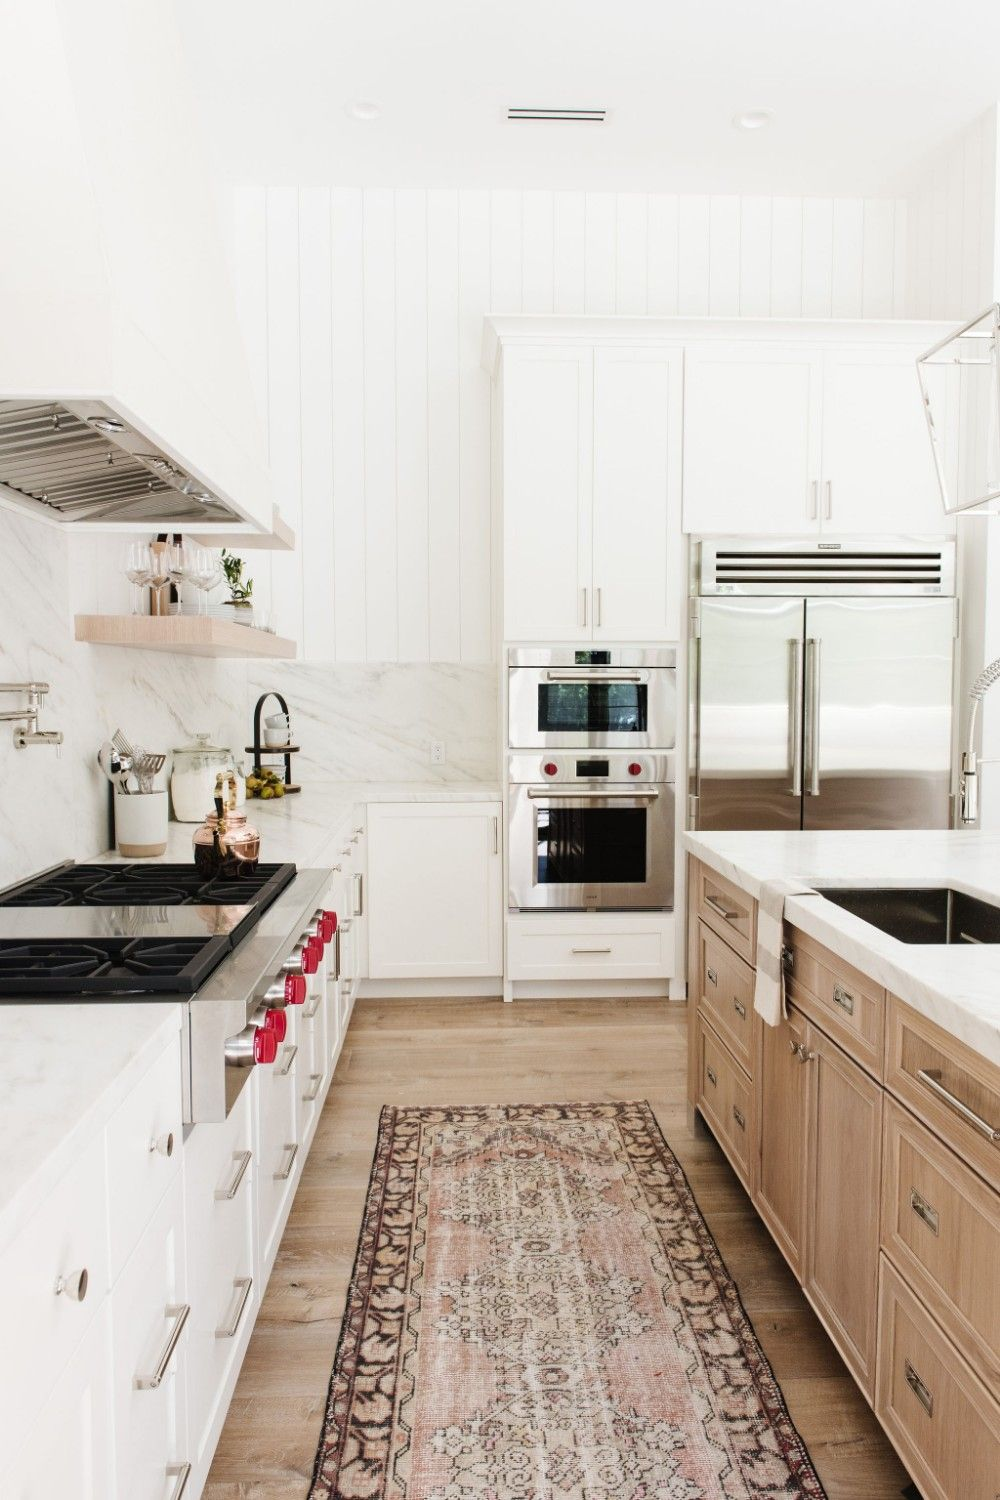 White kitchen with open shelving studio mcgee also amber interiors client say no morrison all sorts of rh pinterest